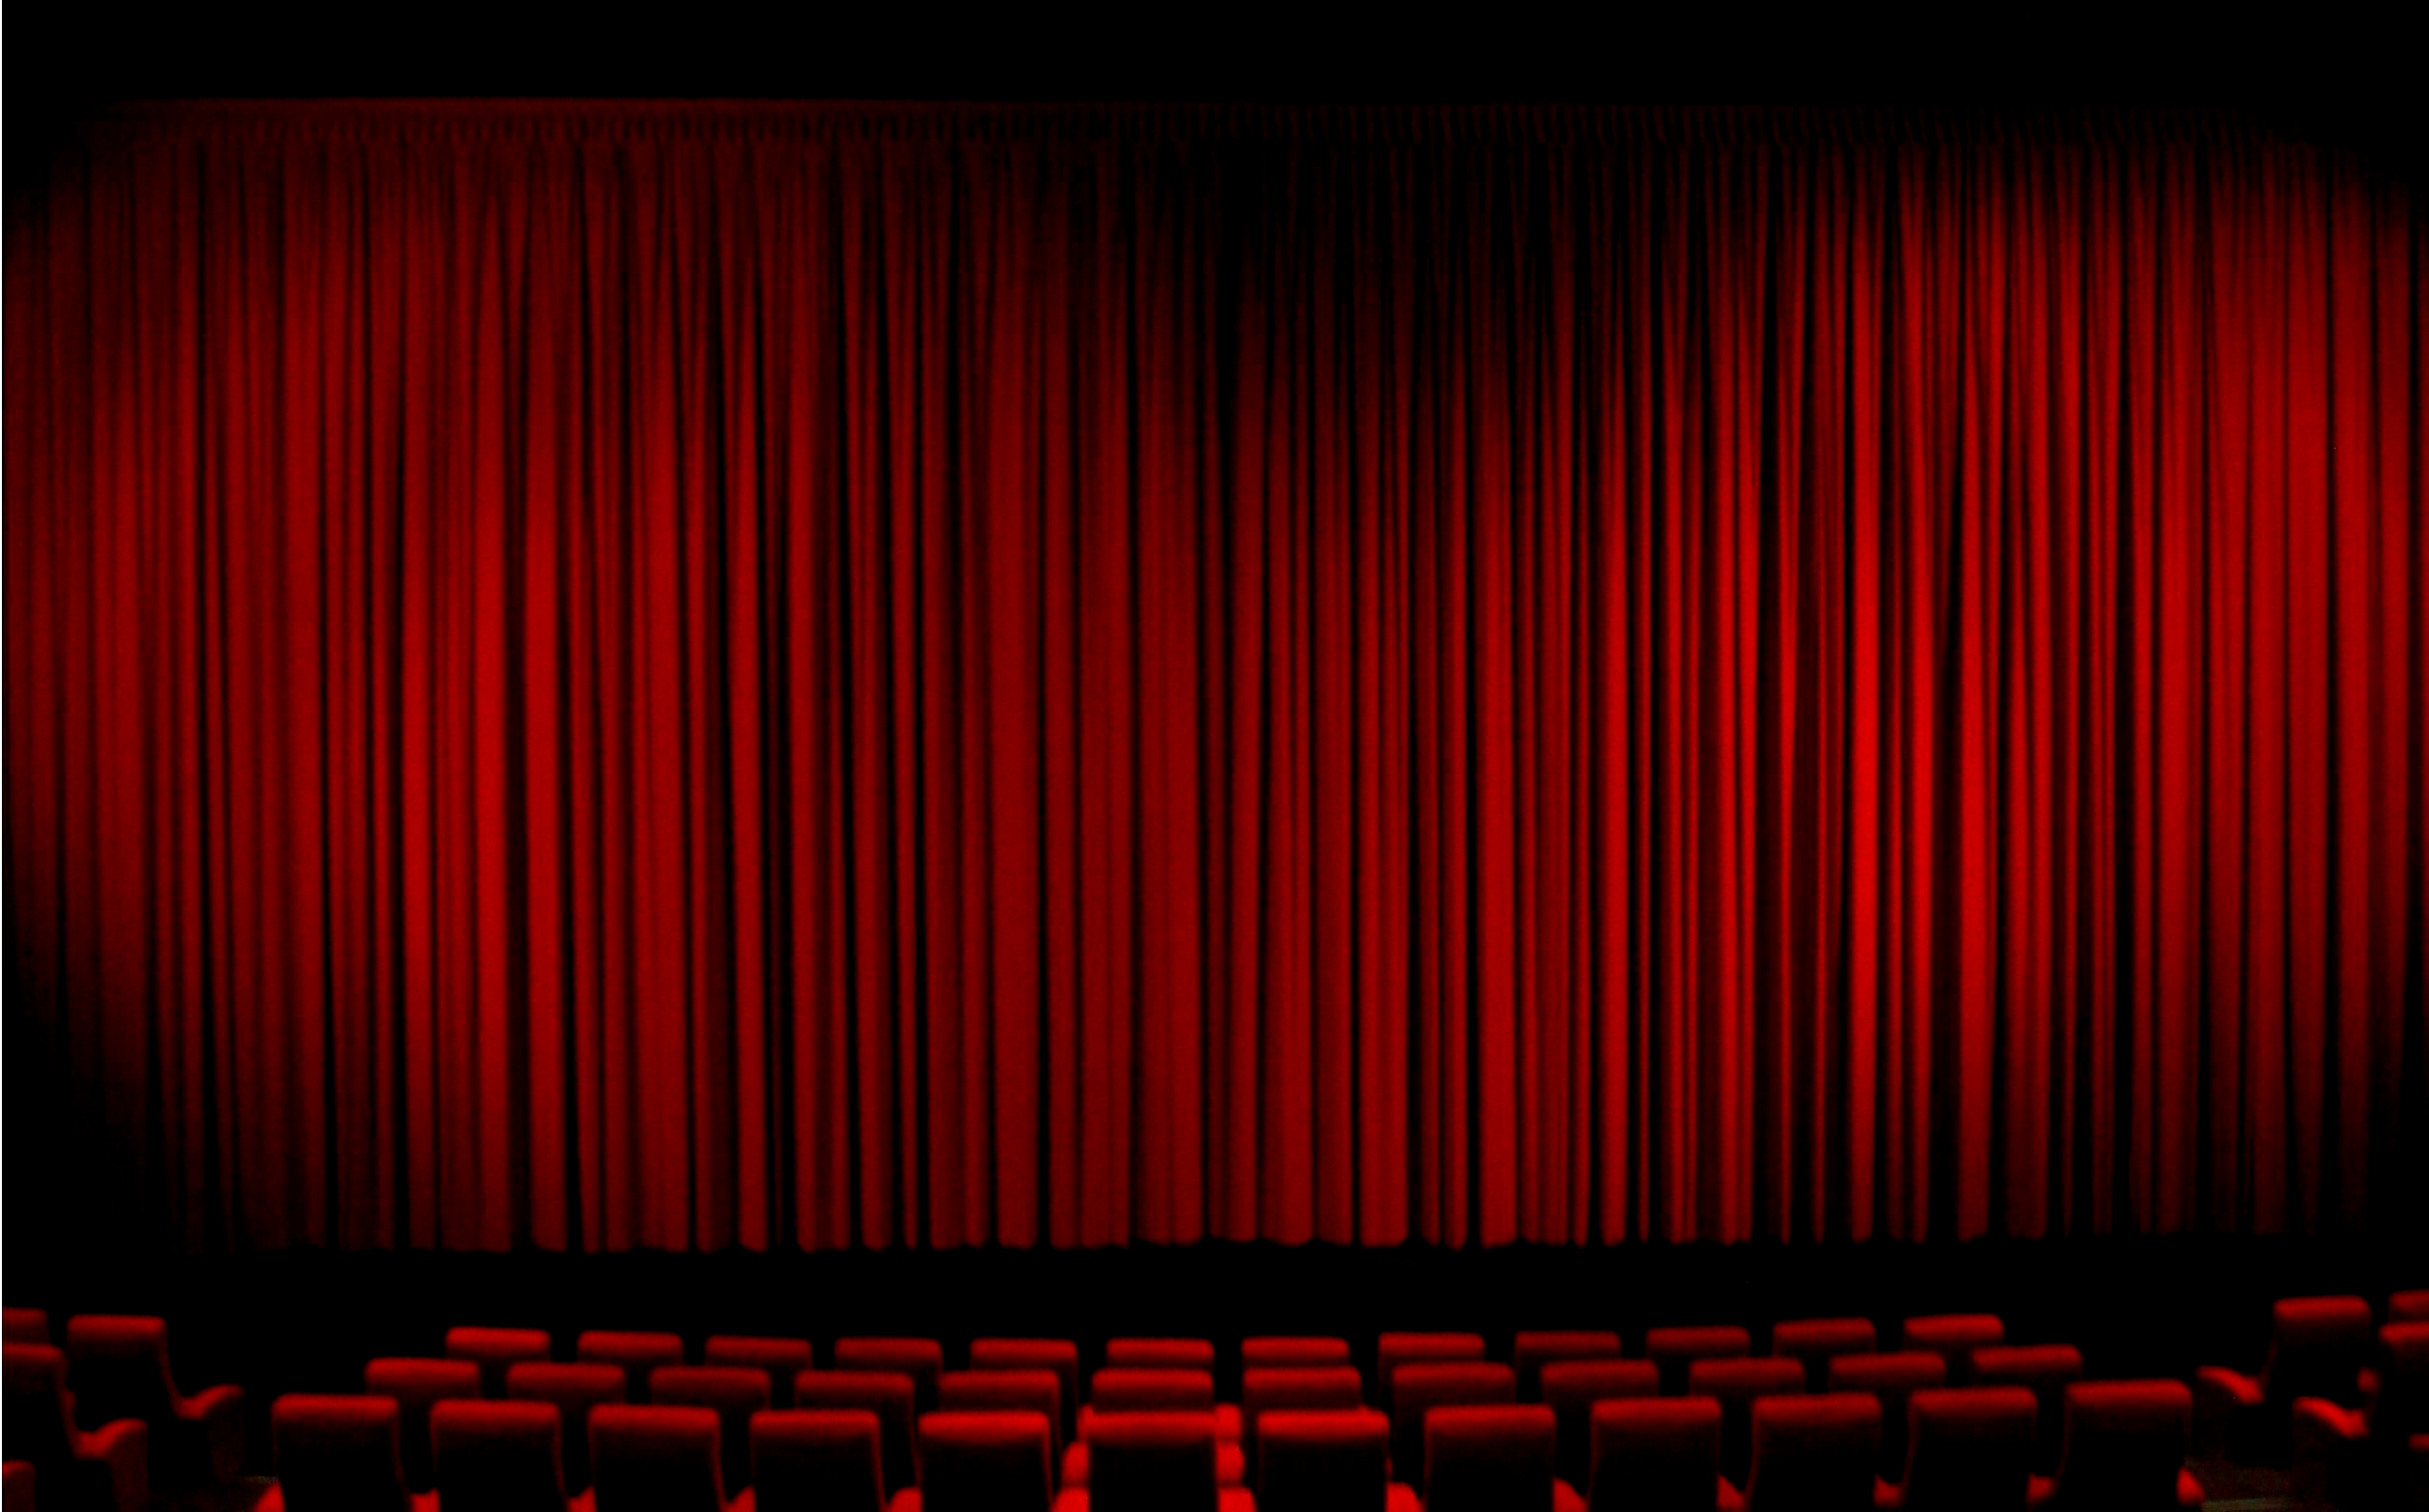 Cinema Wallpapers Top Free Cinema Backgrounds Wallpaperaccess